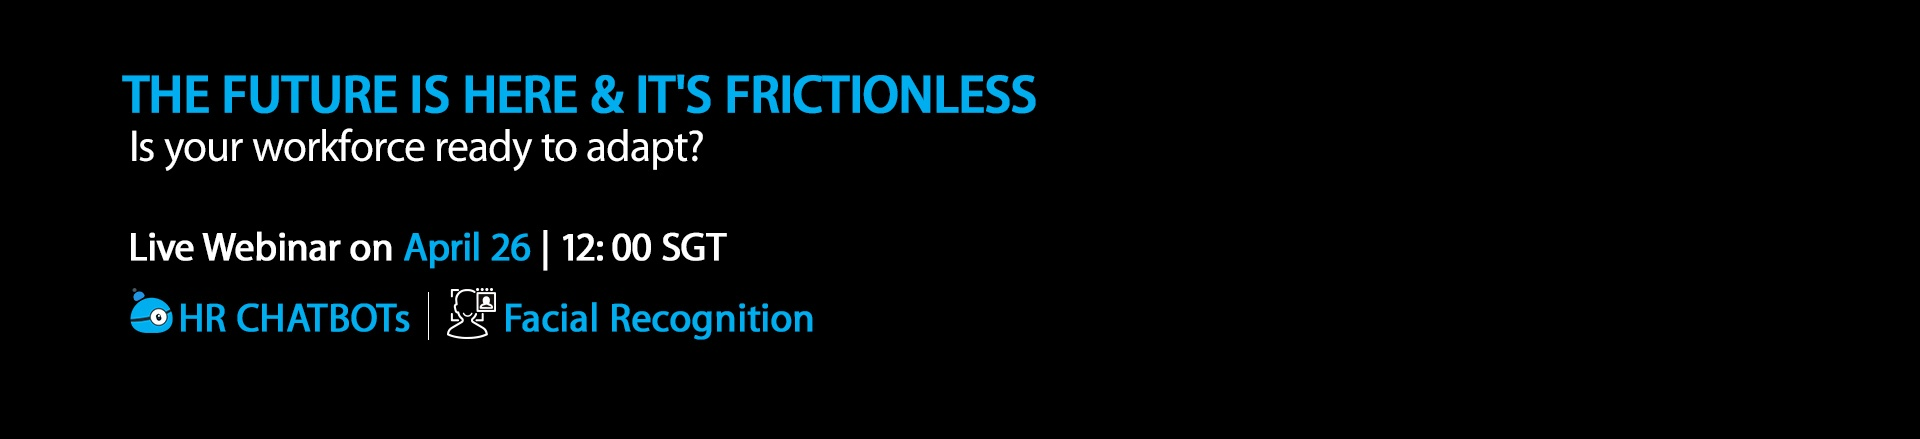 Frictionless-Computing-banner-5.jpg